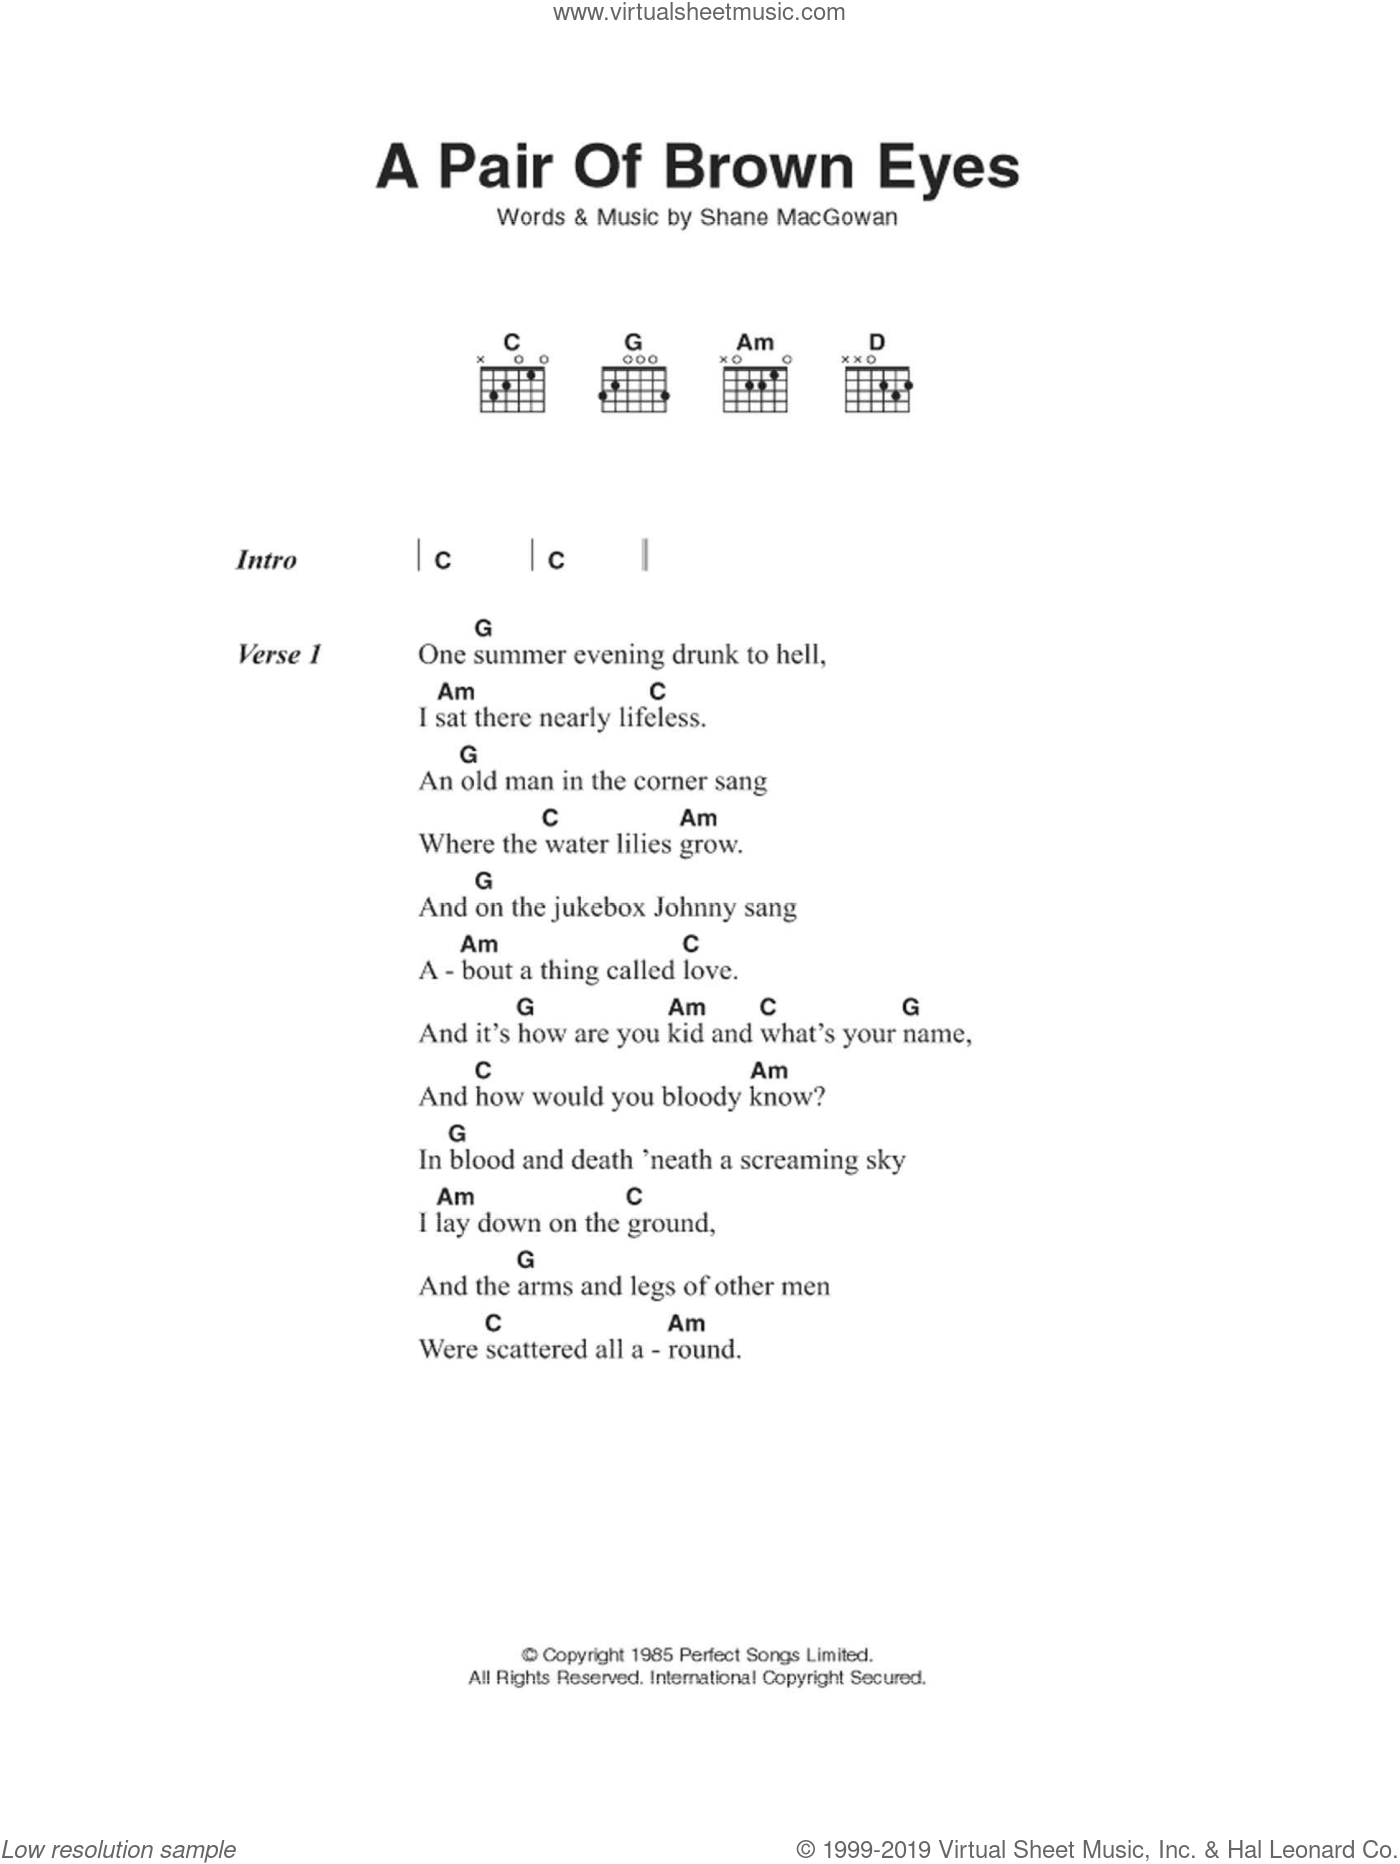 A Pair Of Brown Eyes sheet music for guitar (chords) by Shane MacGowan